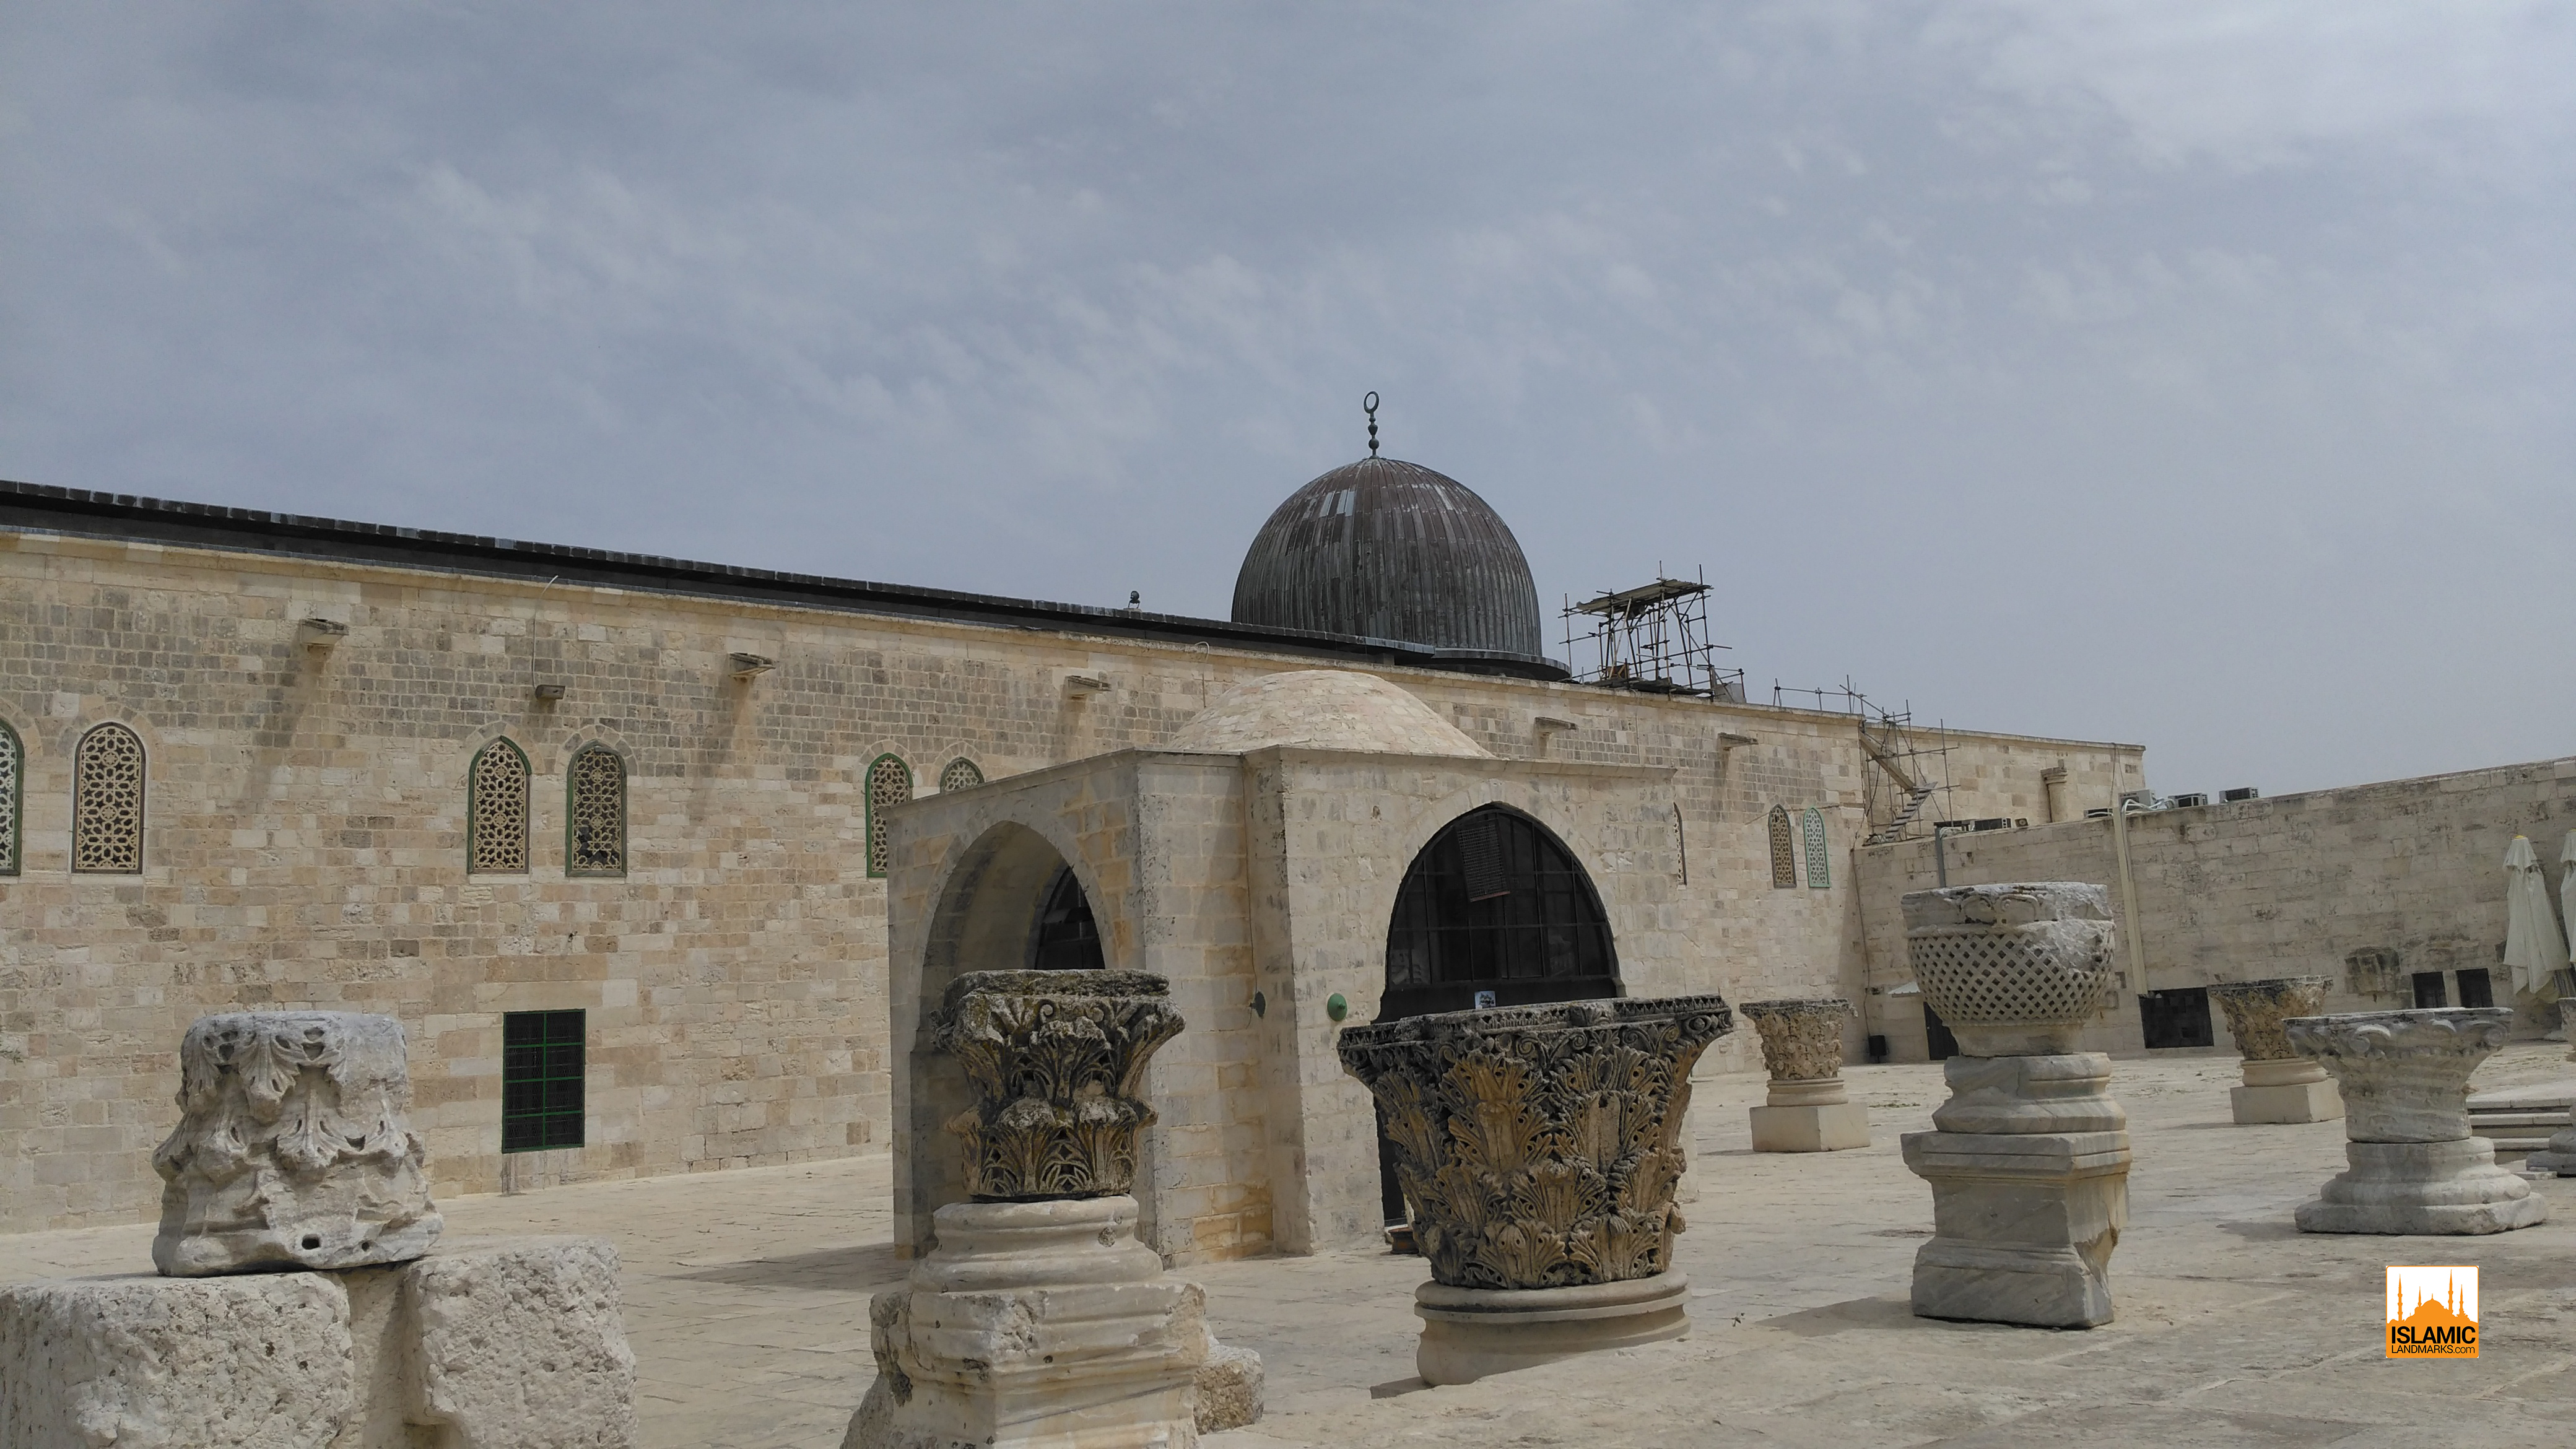 Dome of Yusuf Agha with Masjid al-Qibly in the background